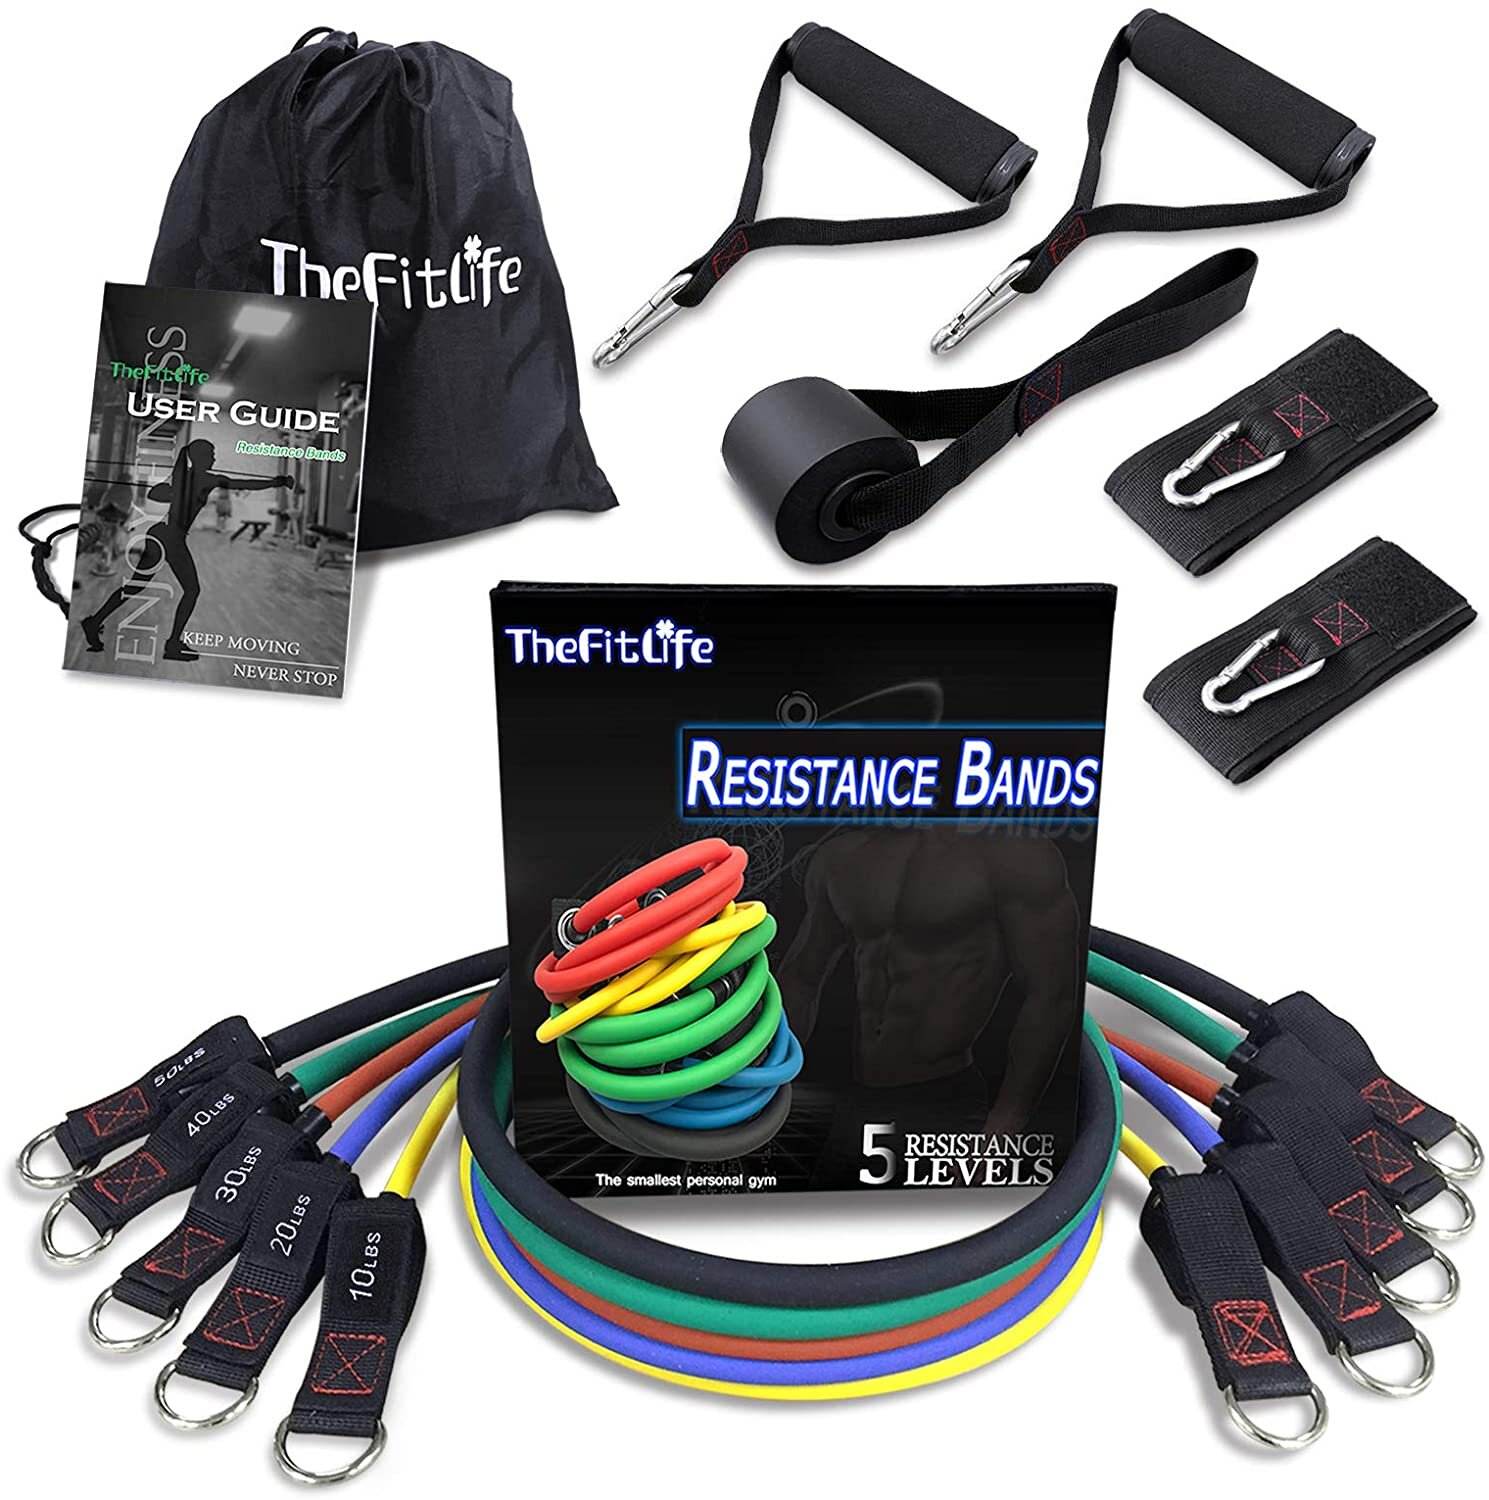 Fitness gift of resistance bands